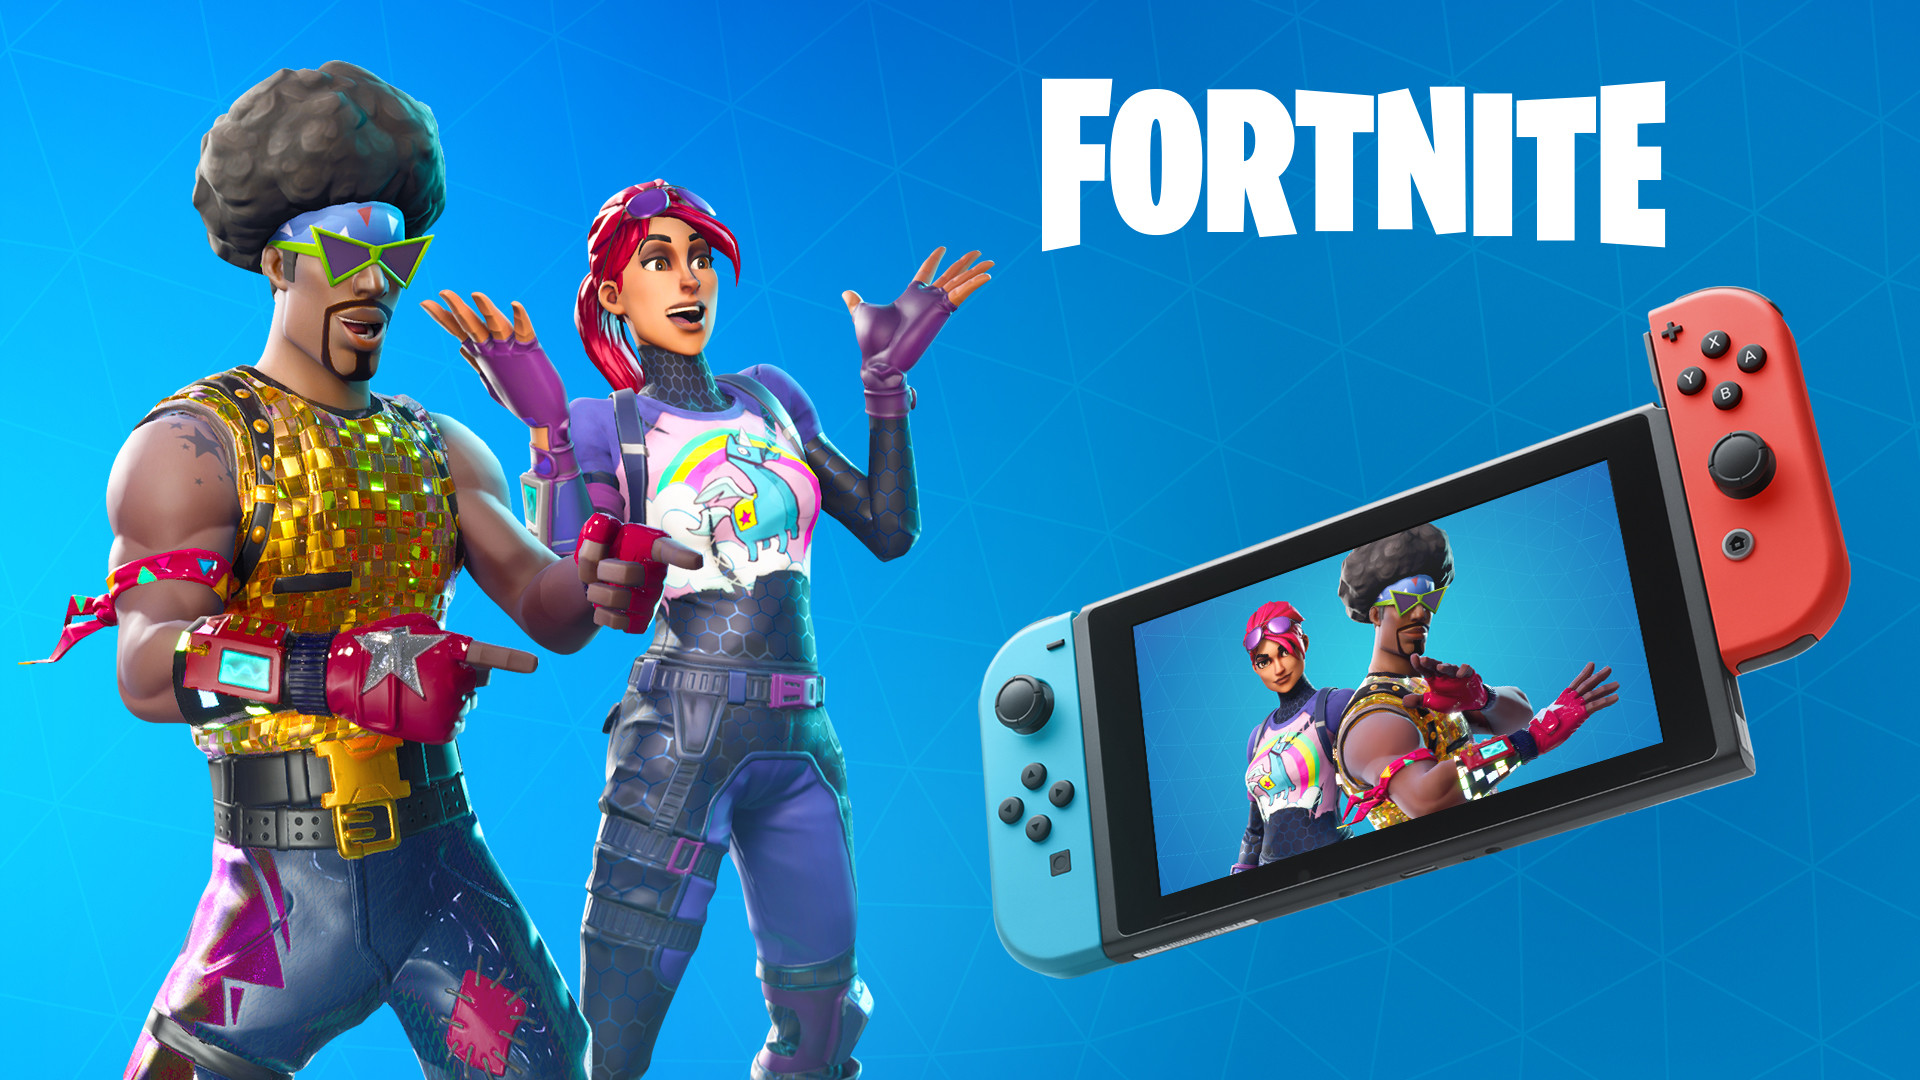 Sony issues weak response to Fortnite cross-play controversy